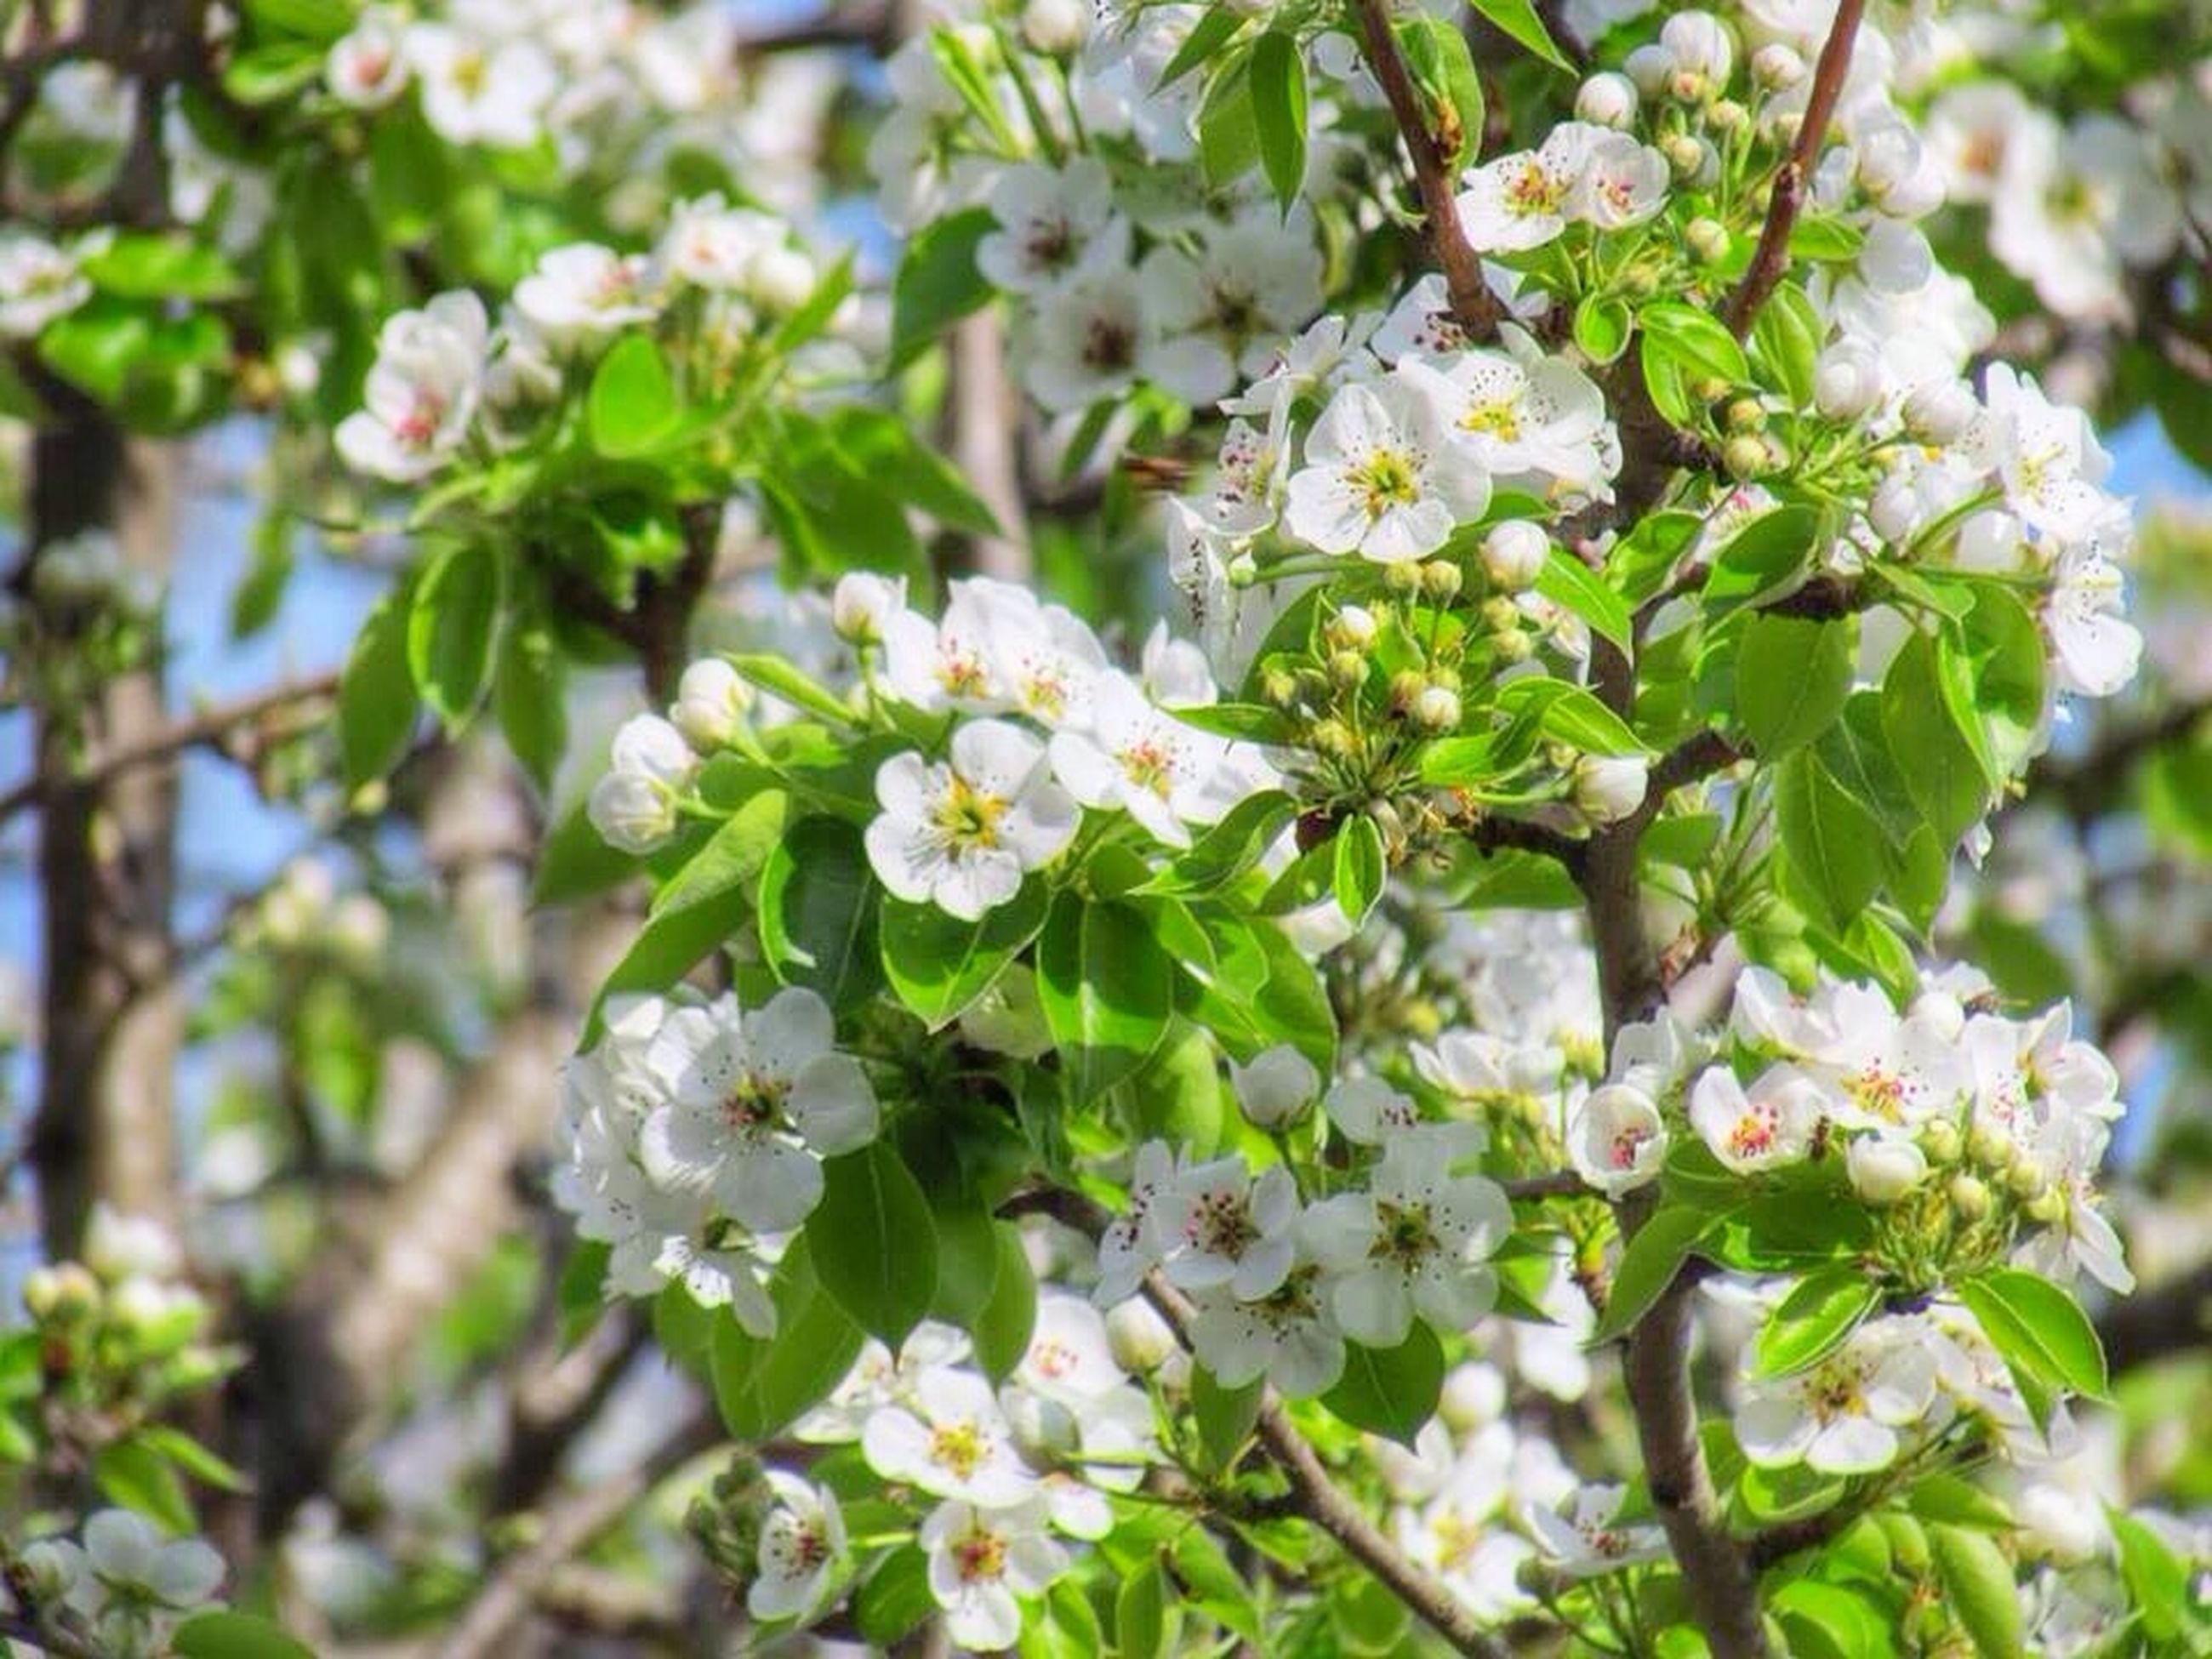 flower, freshness, white color, growth, fragility, petal, beauty in nature, nature, tree, blooming, focus on foreground, branch, flower head, blossom, in bloom, cherry blossom, close-up, springtime, park - man made space, white